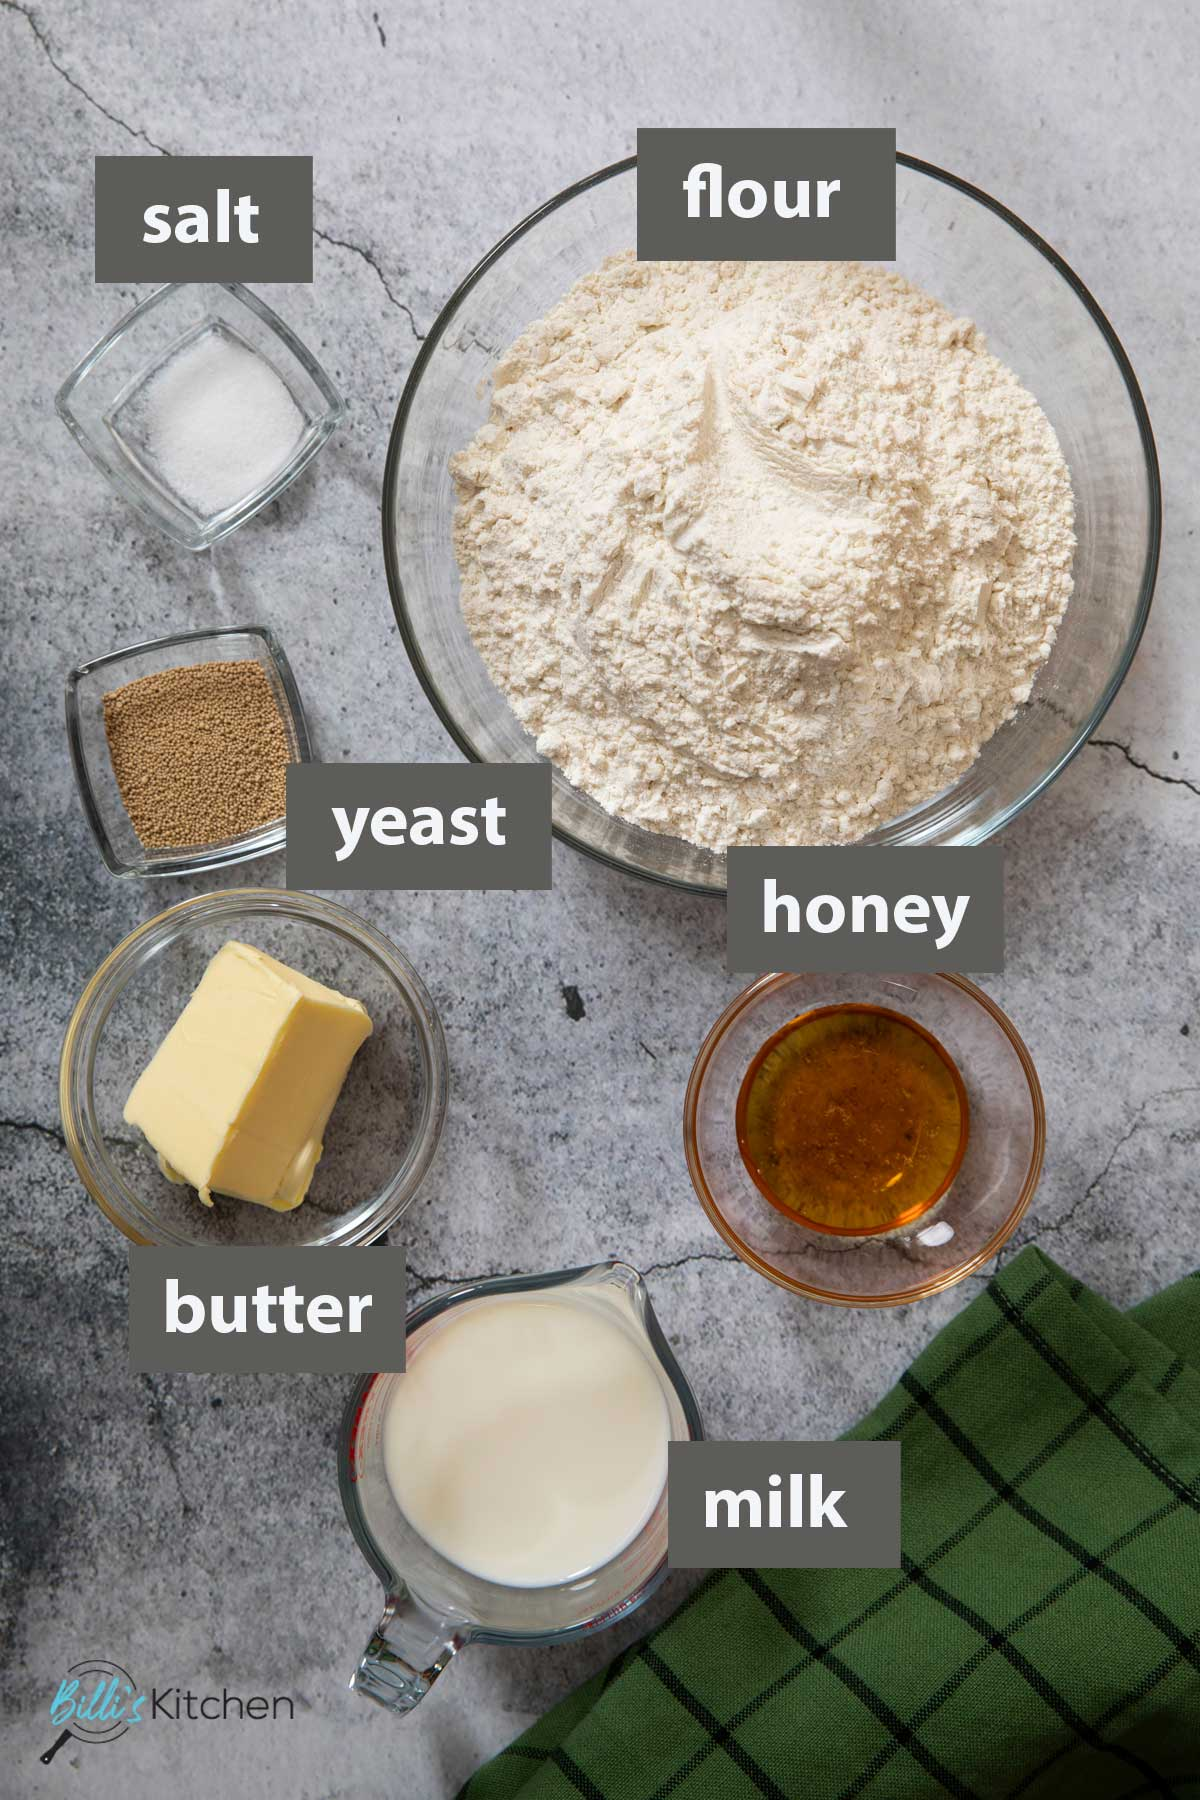 An image showing all the ingredients you need to make sandwich bread at home.